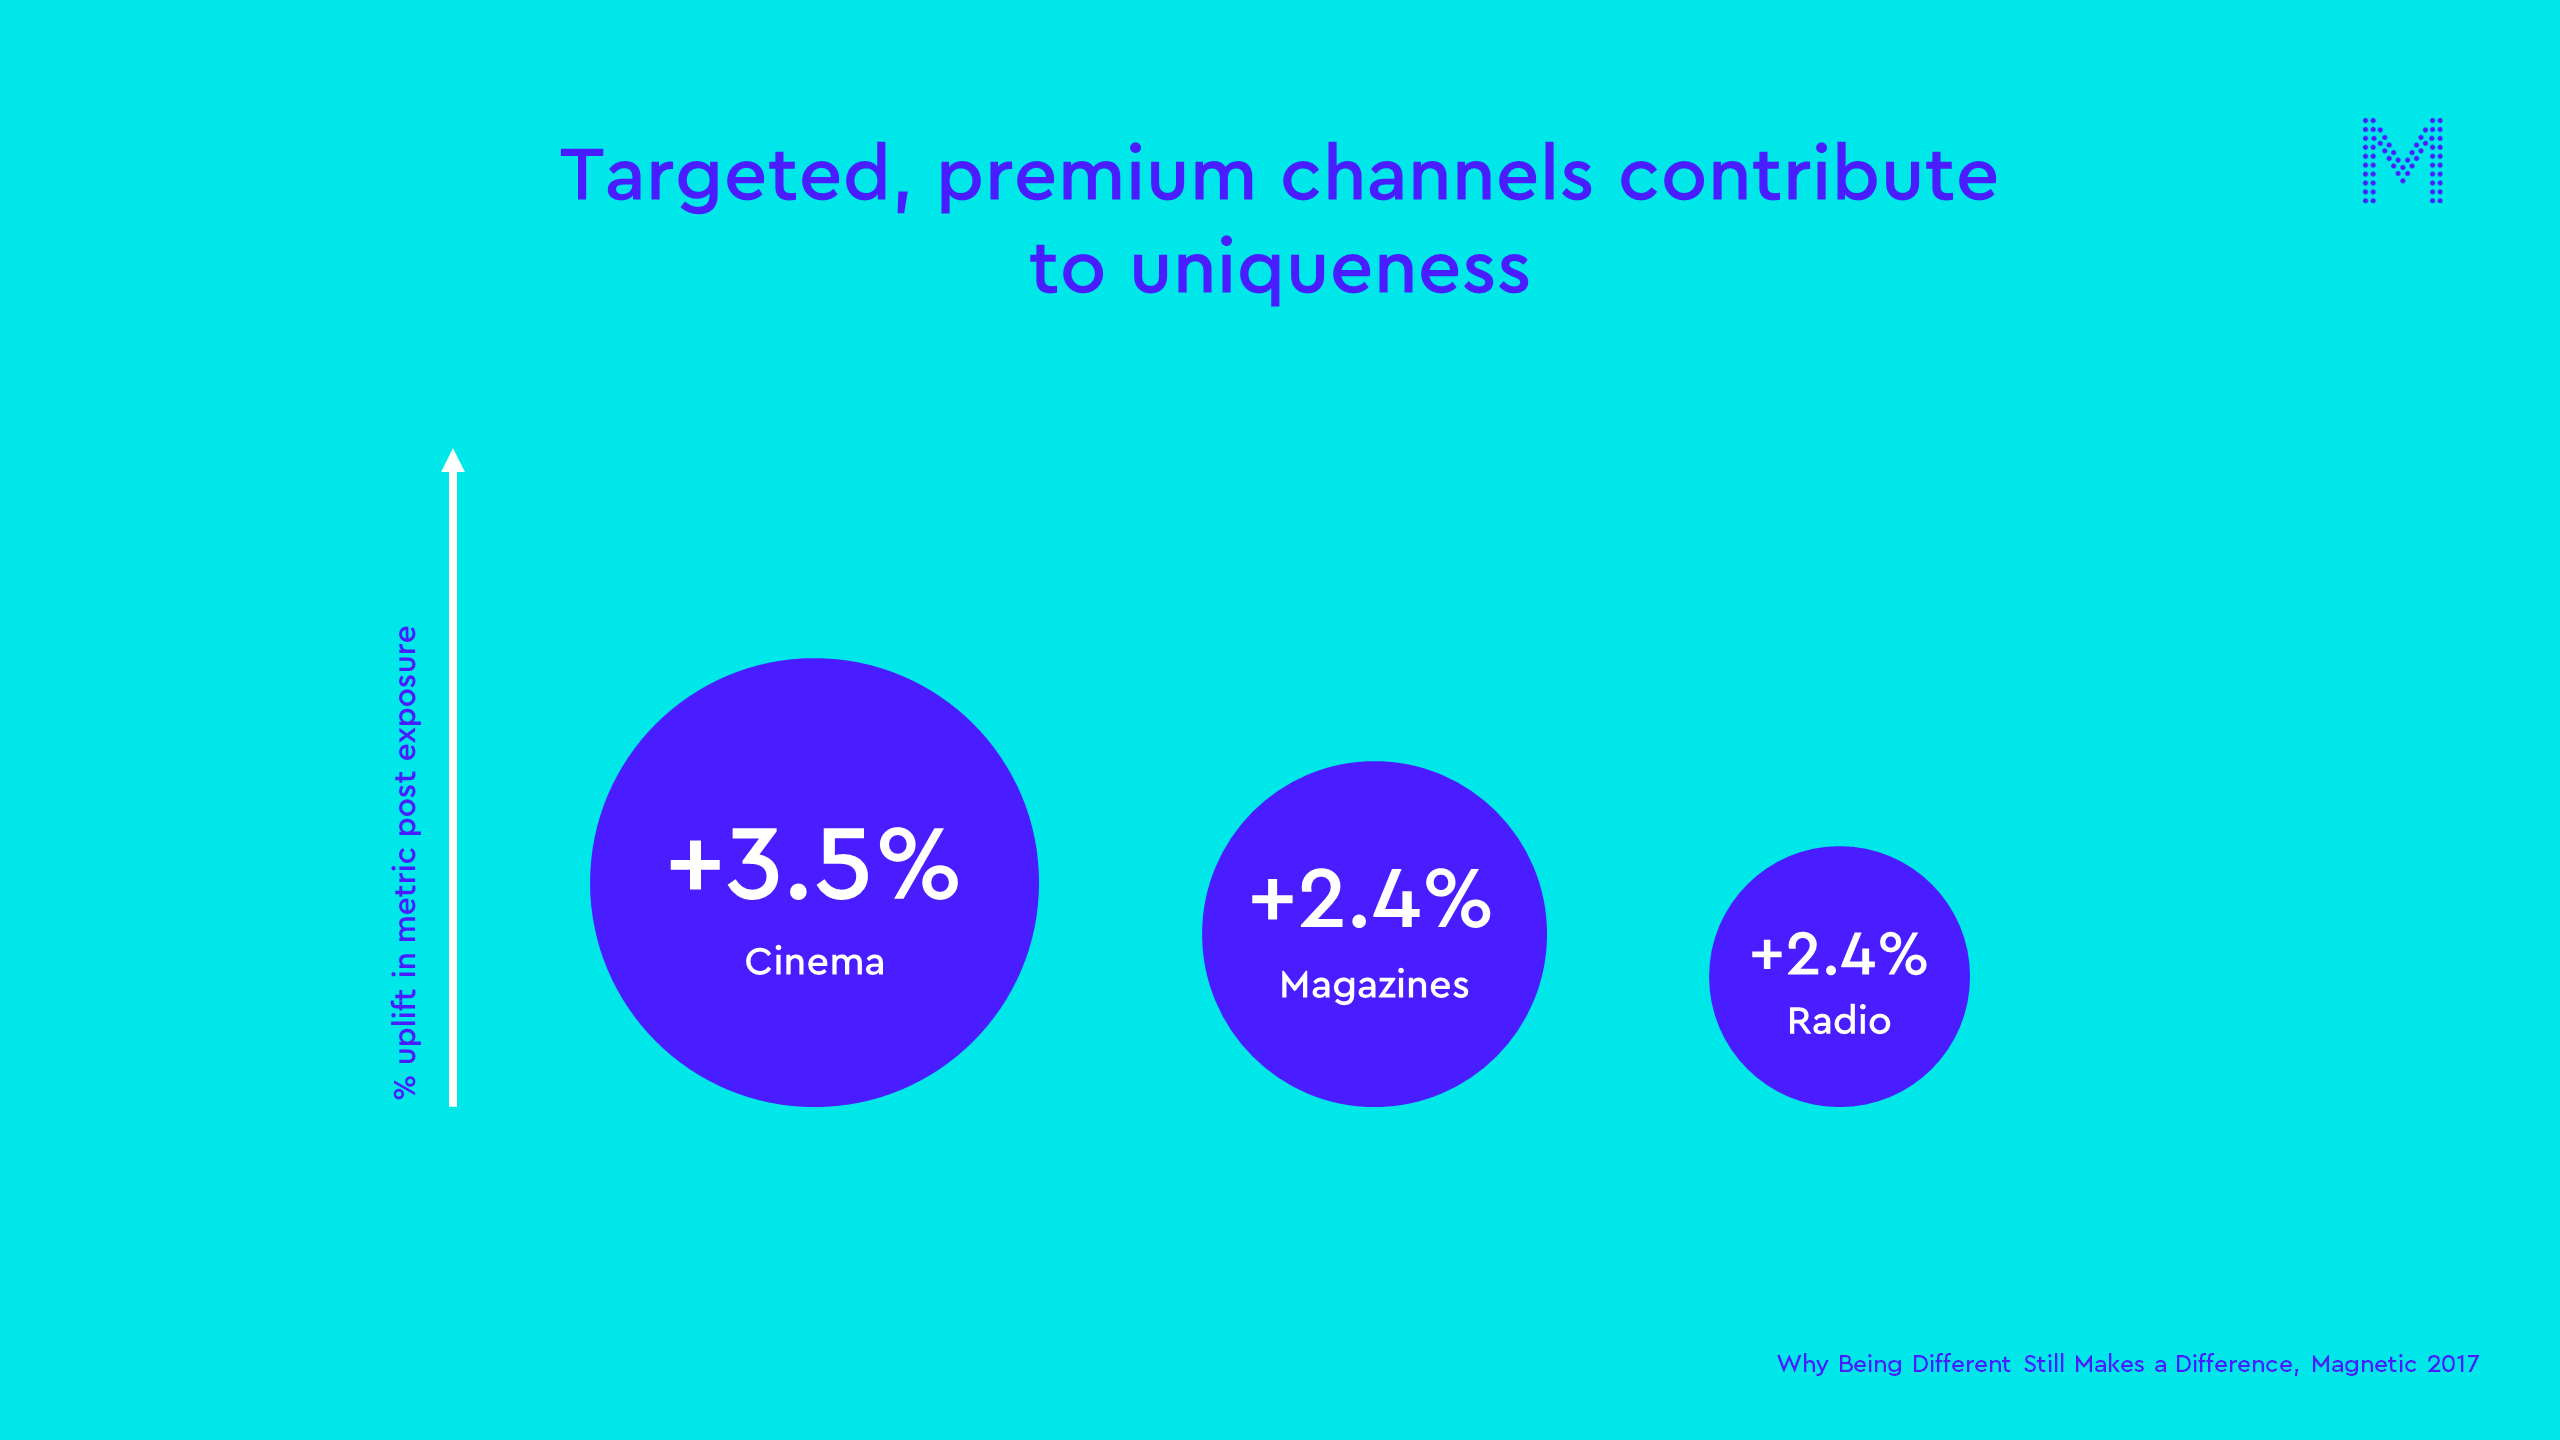 Targeted, premium channels contribute